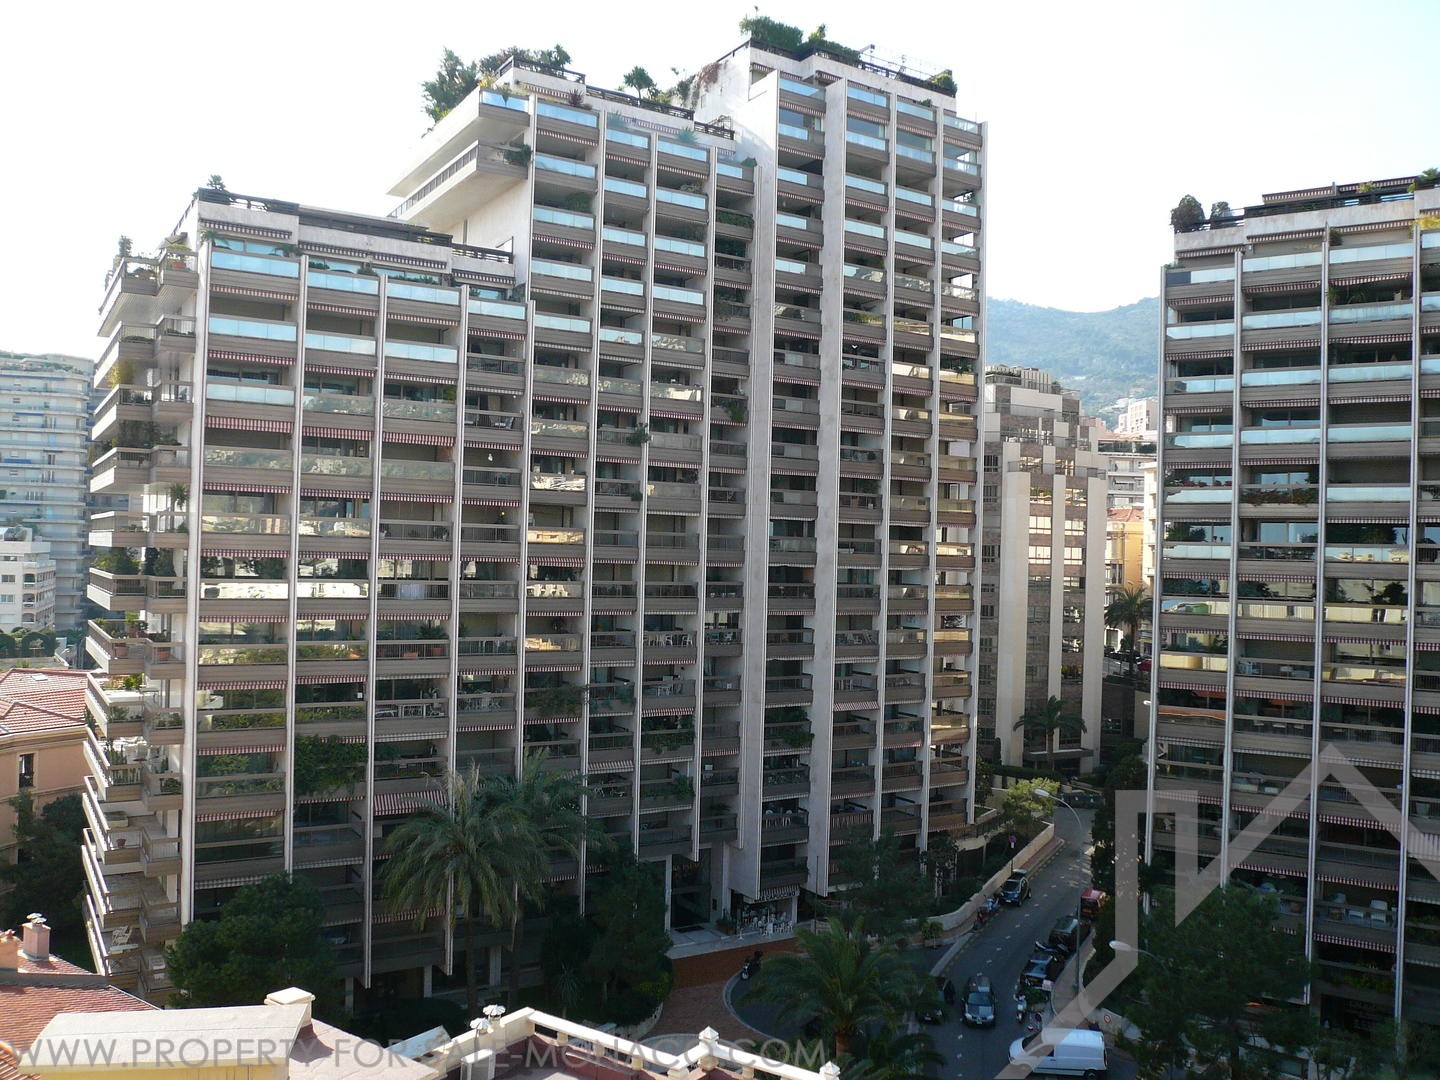 GRAND STUDIO - Properties for sale in Monaco